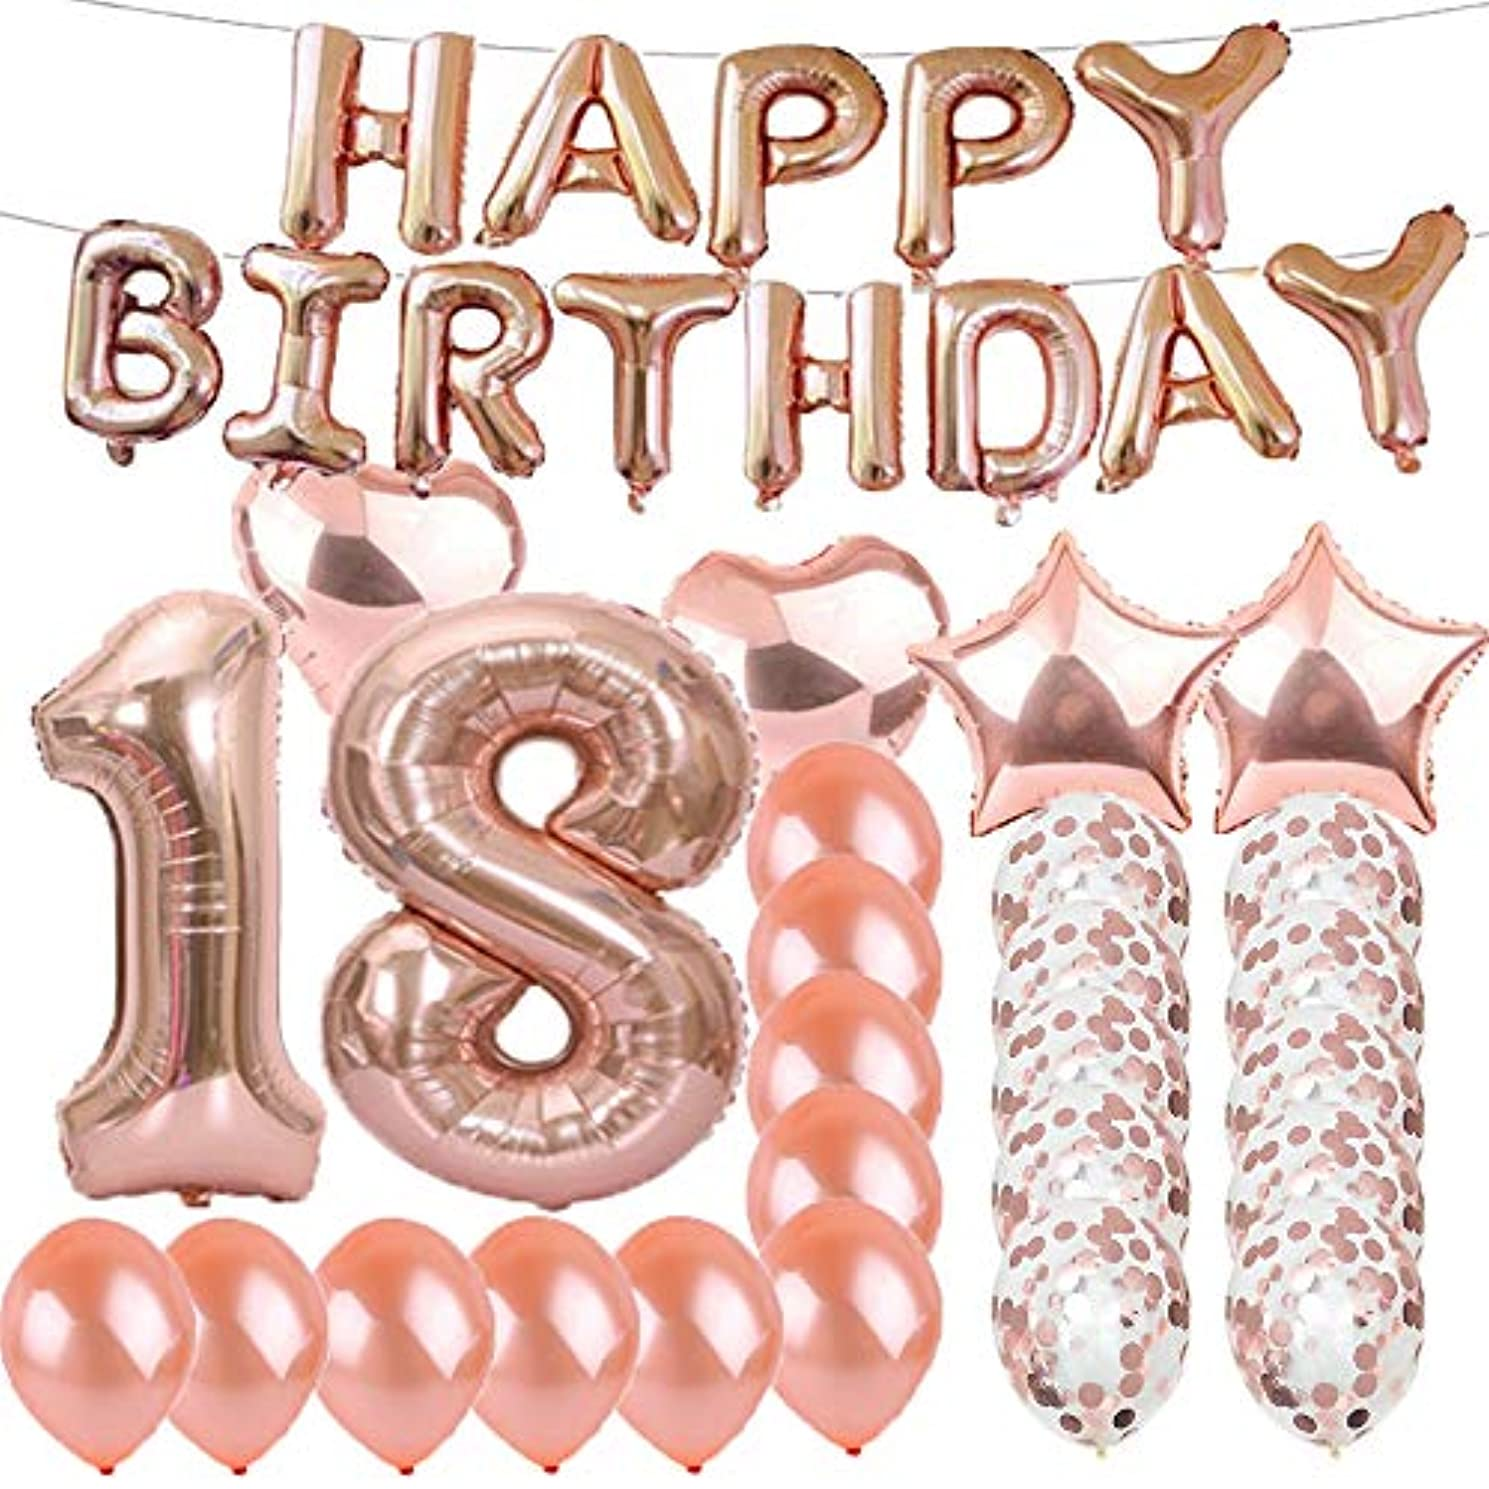 Sweet 18th Birthday Decorations Party Supplies,Rose Gold Number 18 Balloons,18th Foil Mylar Balloons Latex Balloon Decoration,Great 18th Birthday Gifts for Girls,Women,Men,Photo Props